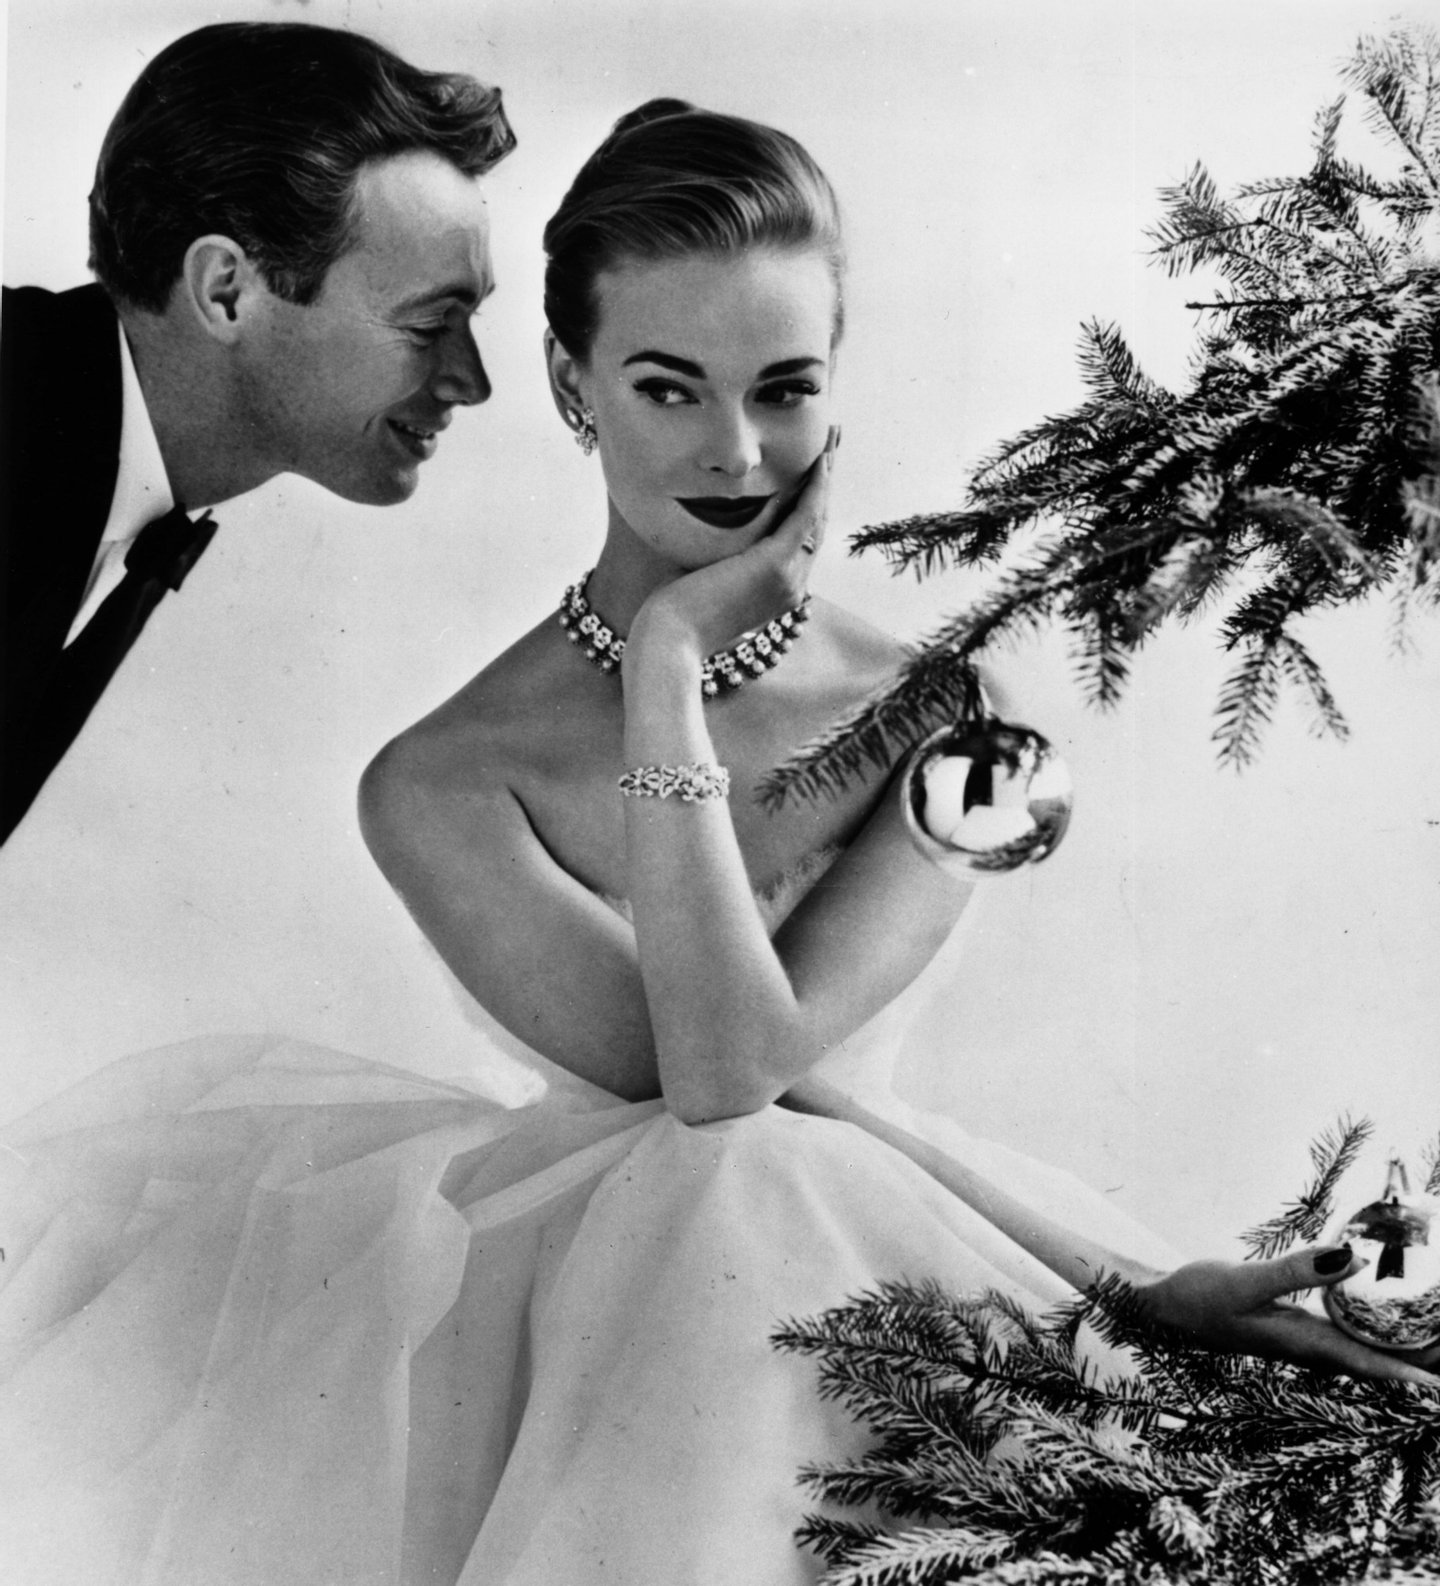 A couple flirting beside a Christmas tree, December 1955. The female model is Susan Abraham. Original Publication: Housewife Magazine - pub. 1955 (Photo by John French/Getty Images)